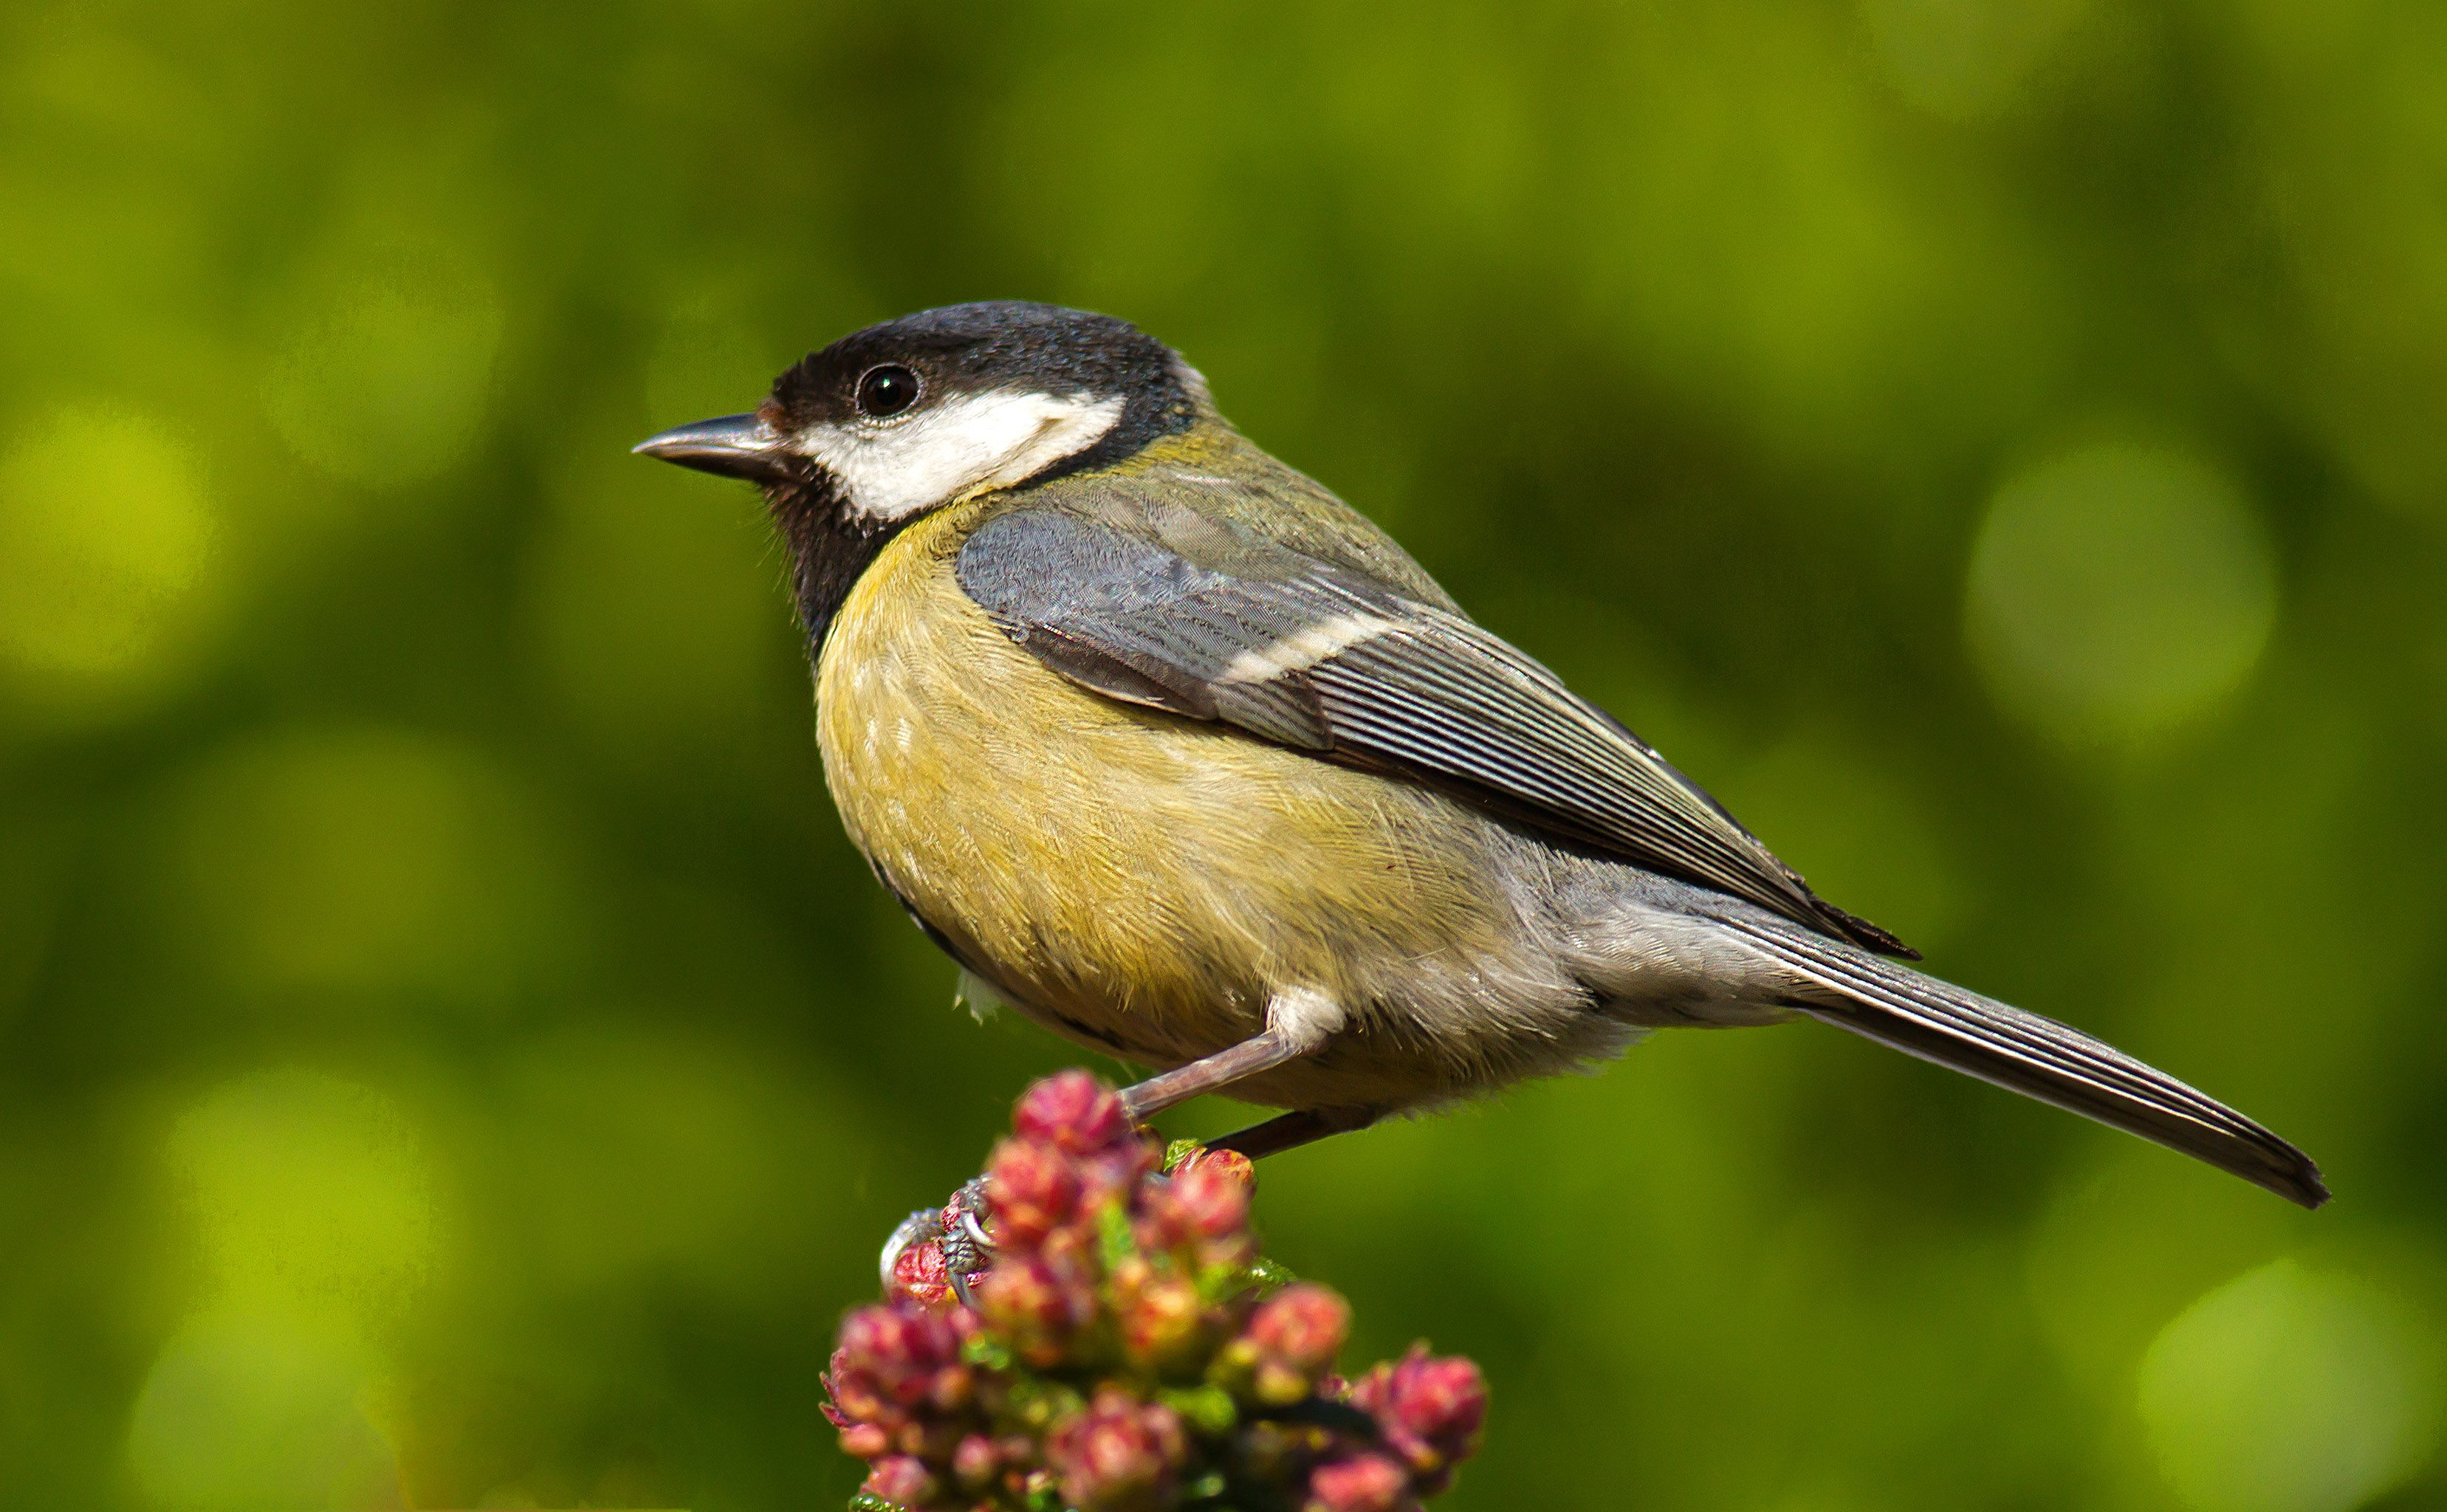 Why Bird Brain Shouldnt Be Considered >> Great Tits Are Killing Birds And Eating Their Brains Climate Change